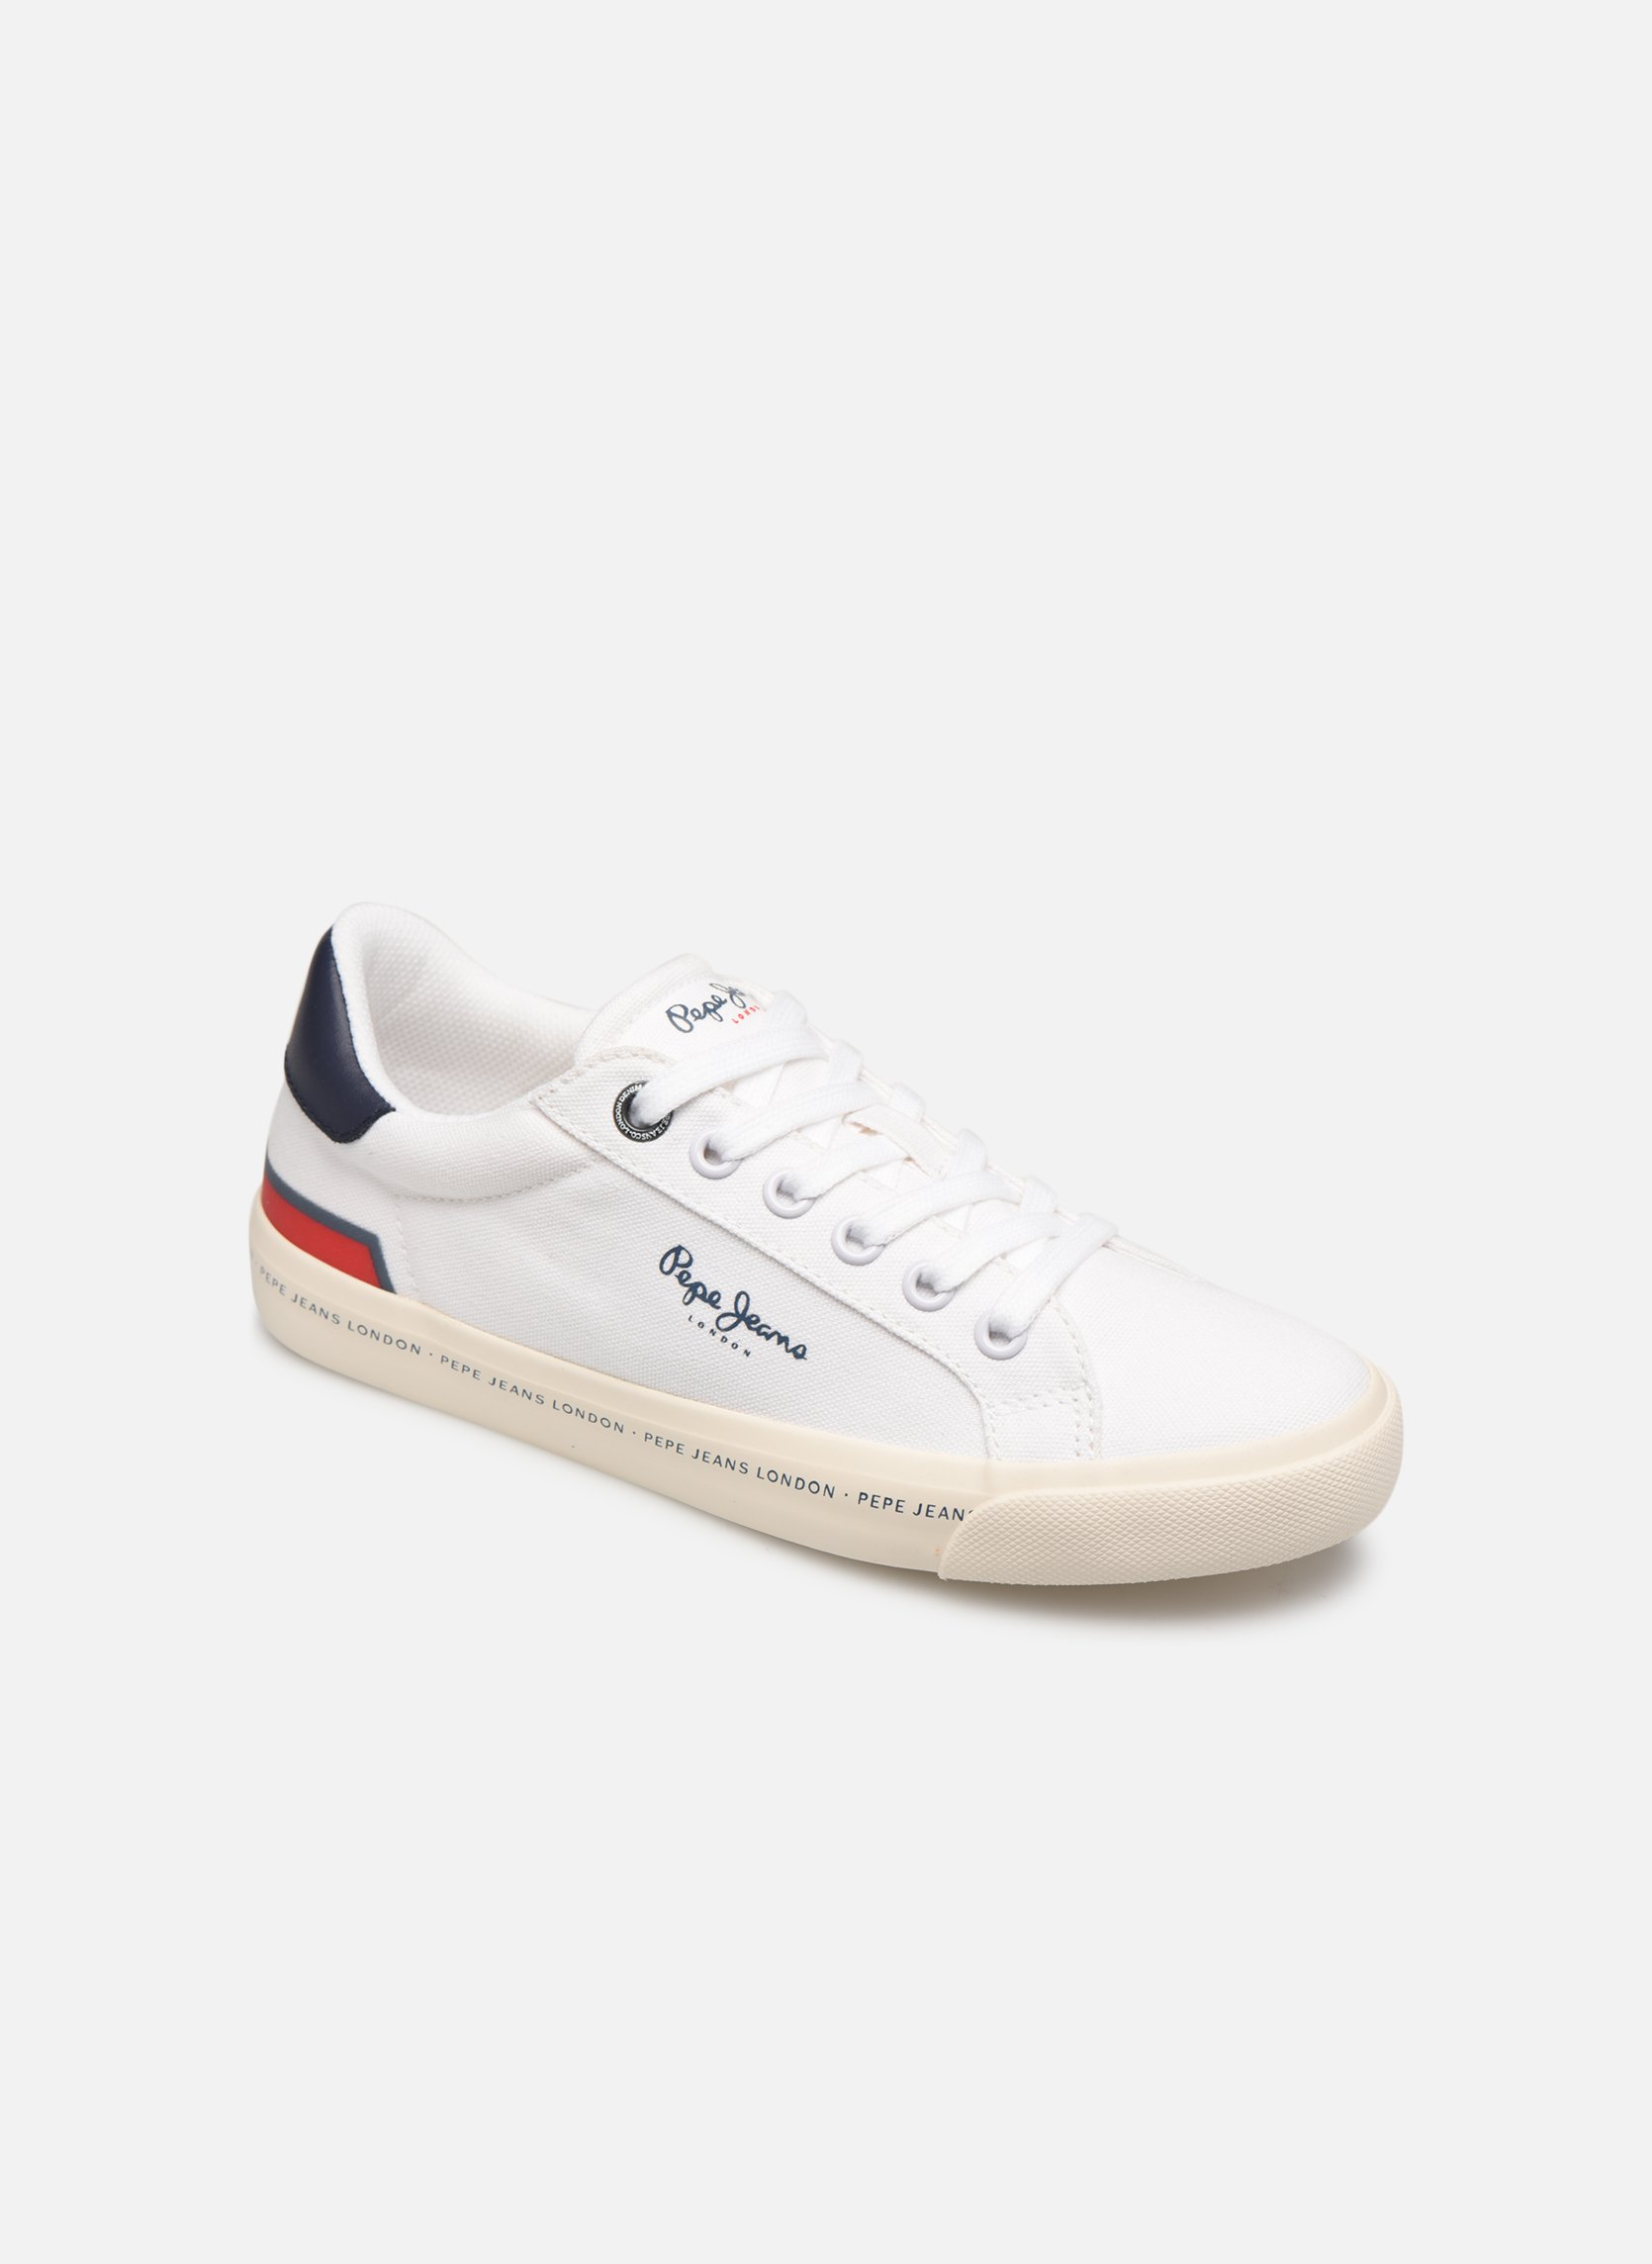 Sneakers Pepe jeans Wit